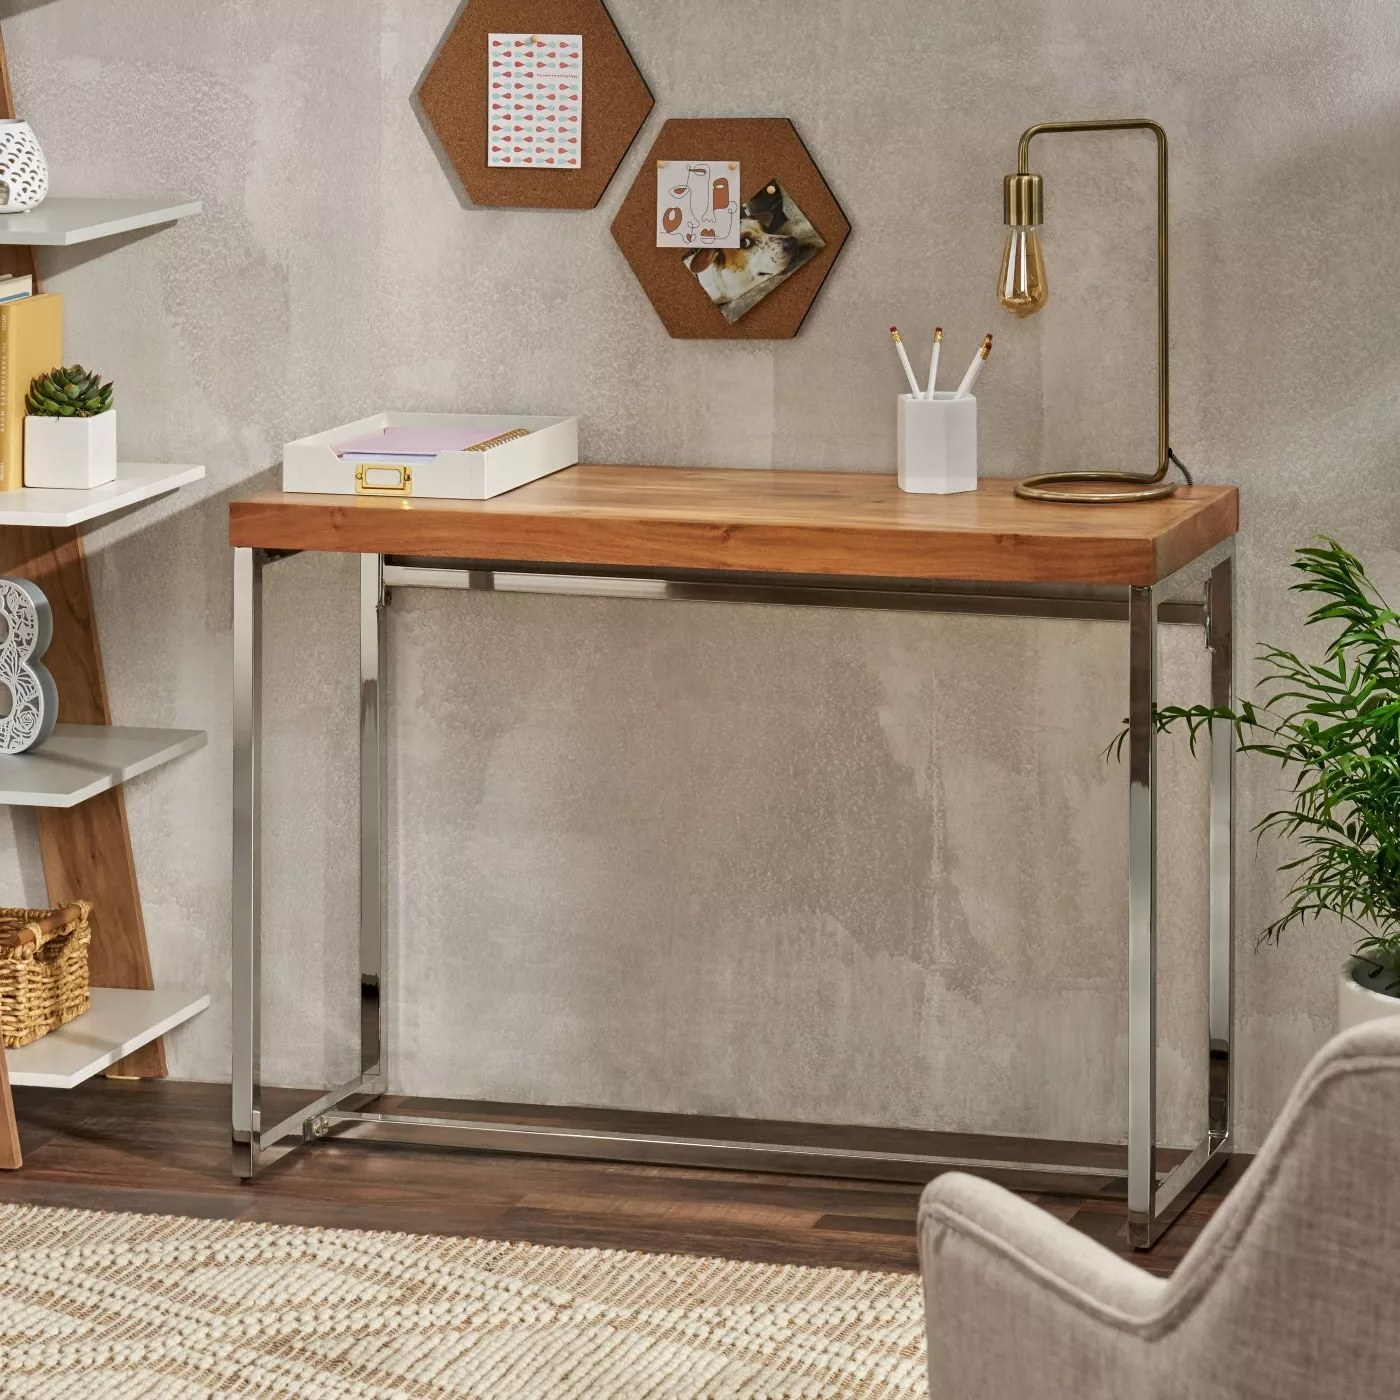 The wood and chrome desk